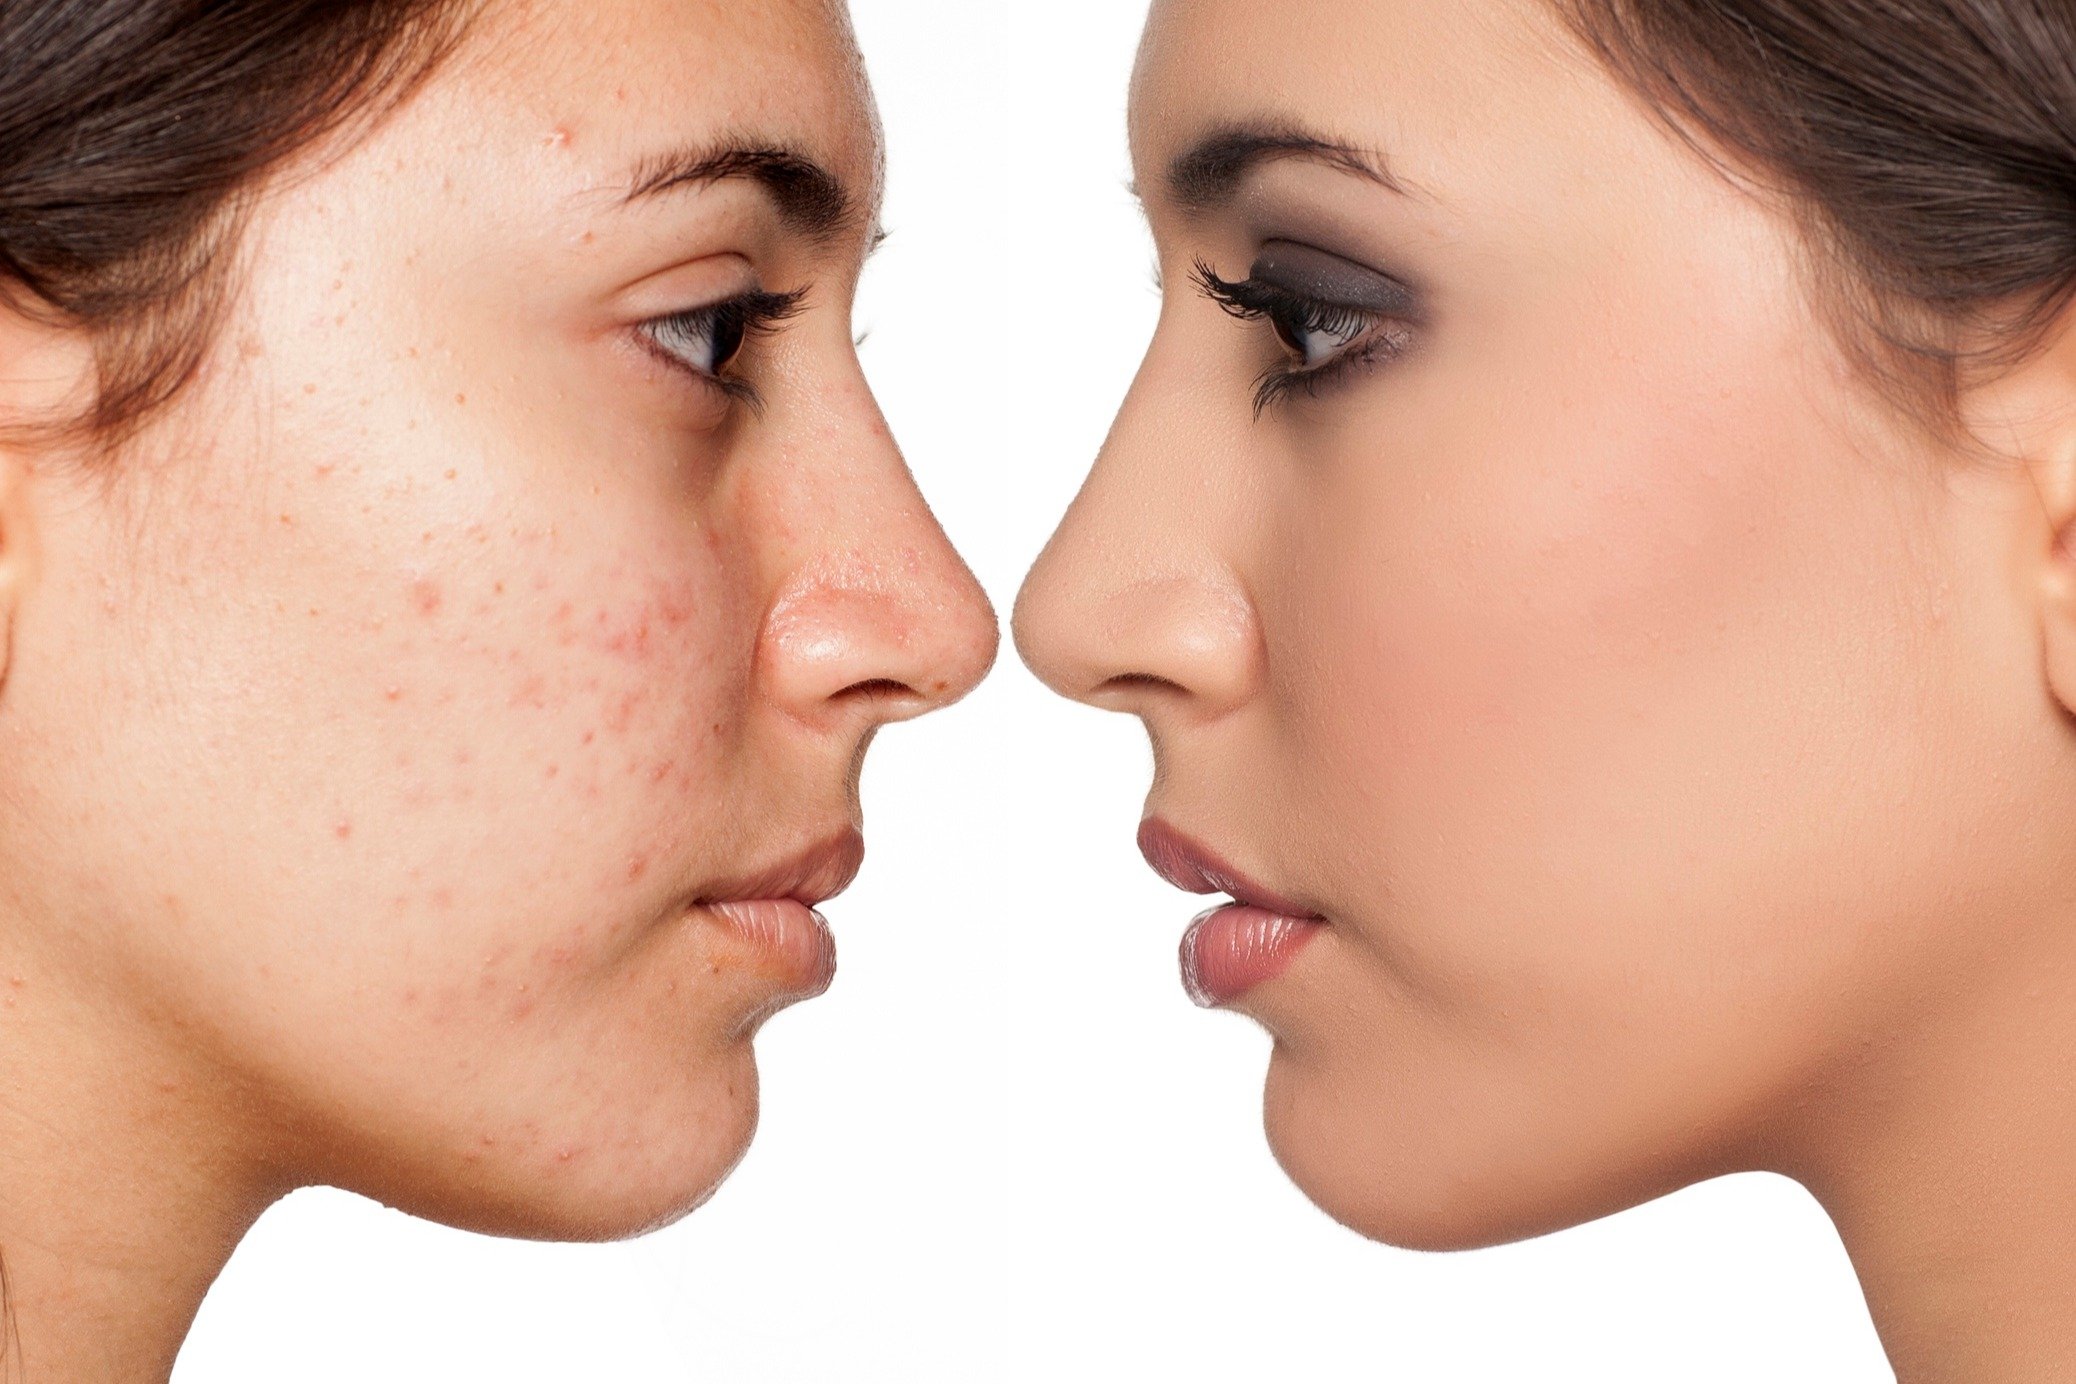 How Long Can I Take An Antibiotic To Treat My Acne